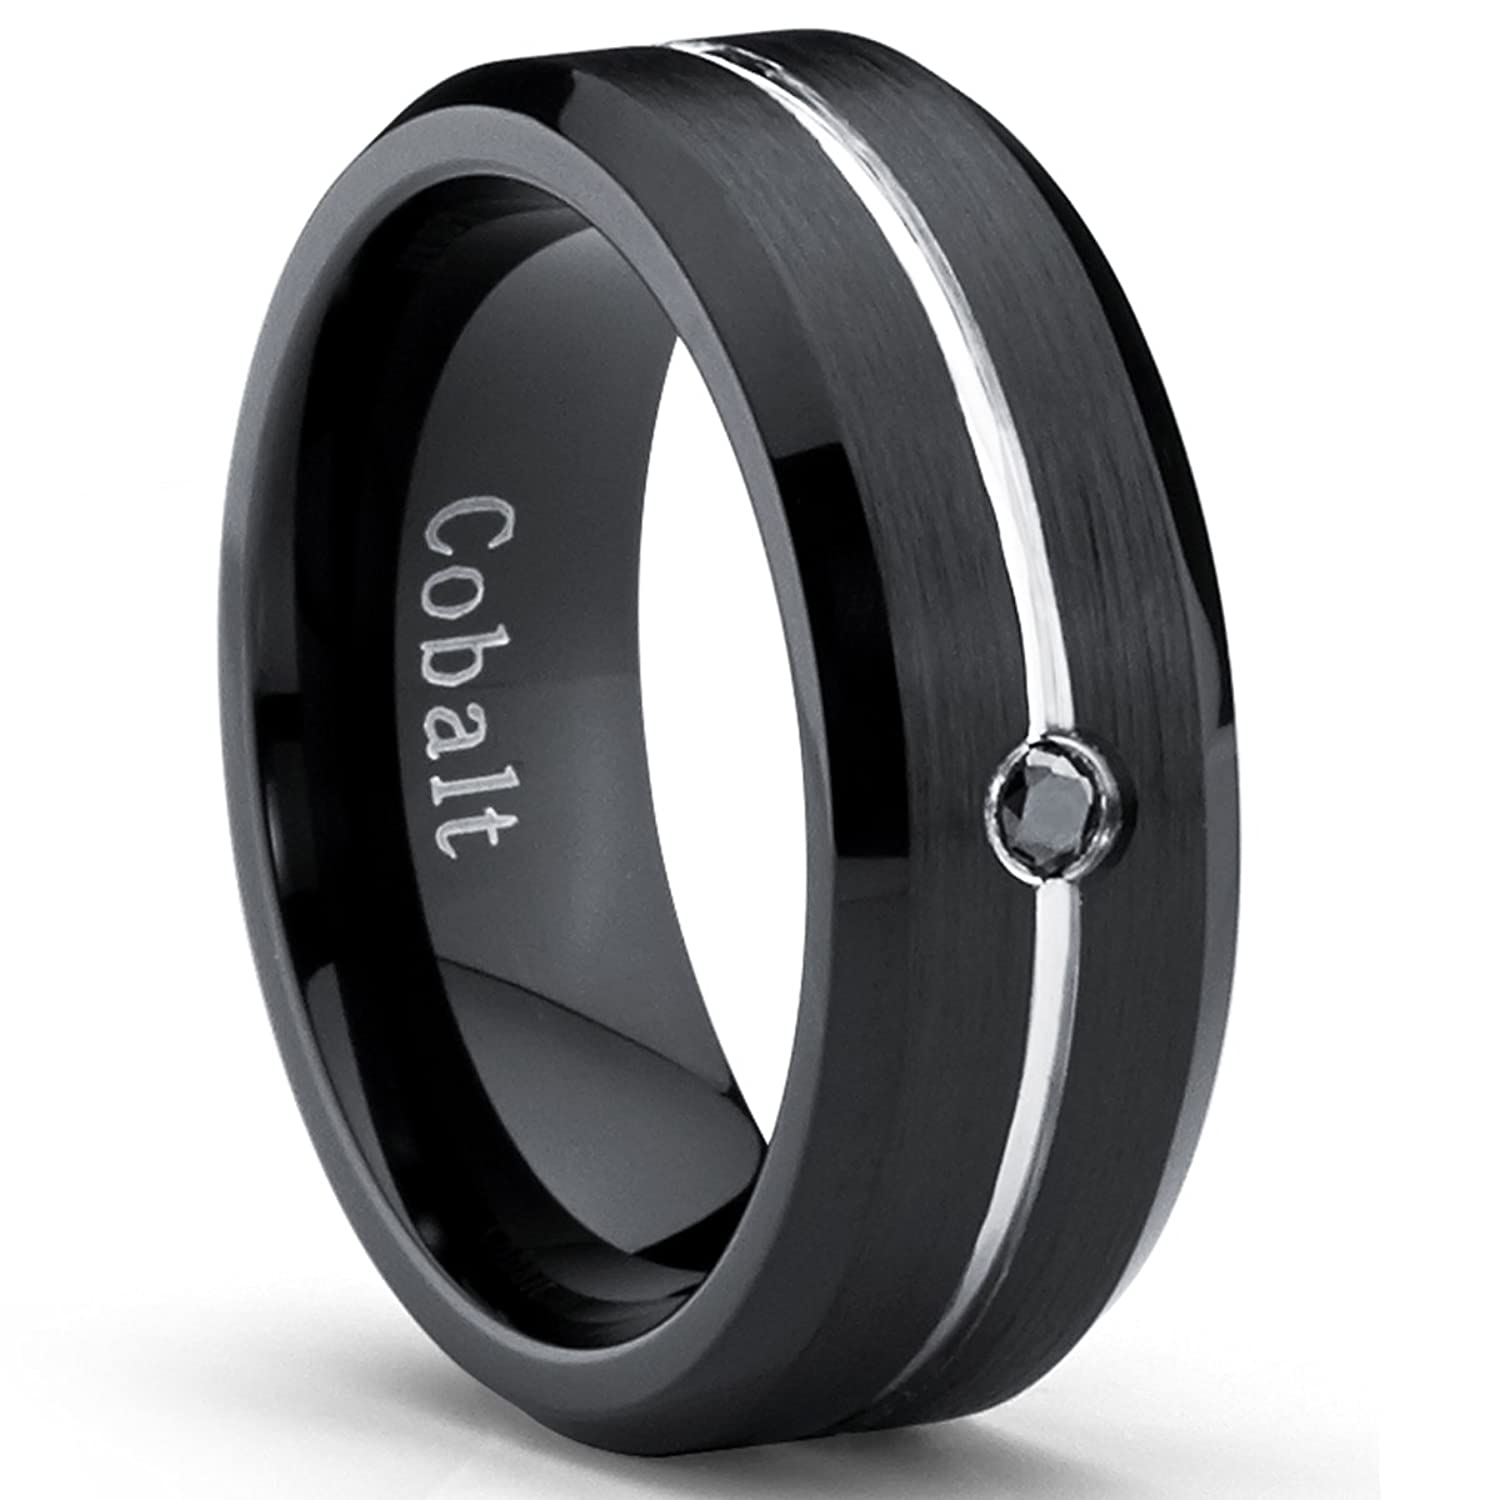 bands attachment rings to wedding ring sets photo black titanium of gallery pertaining viewing mens